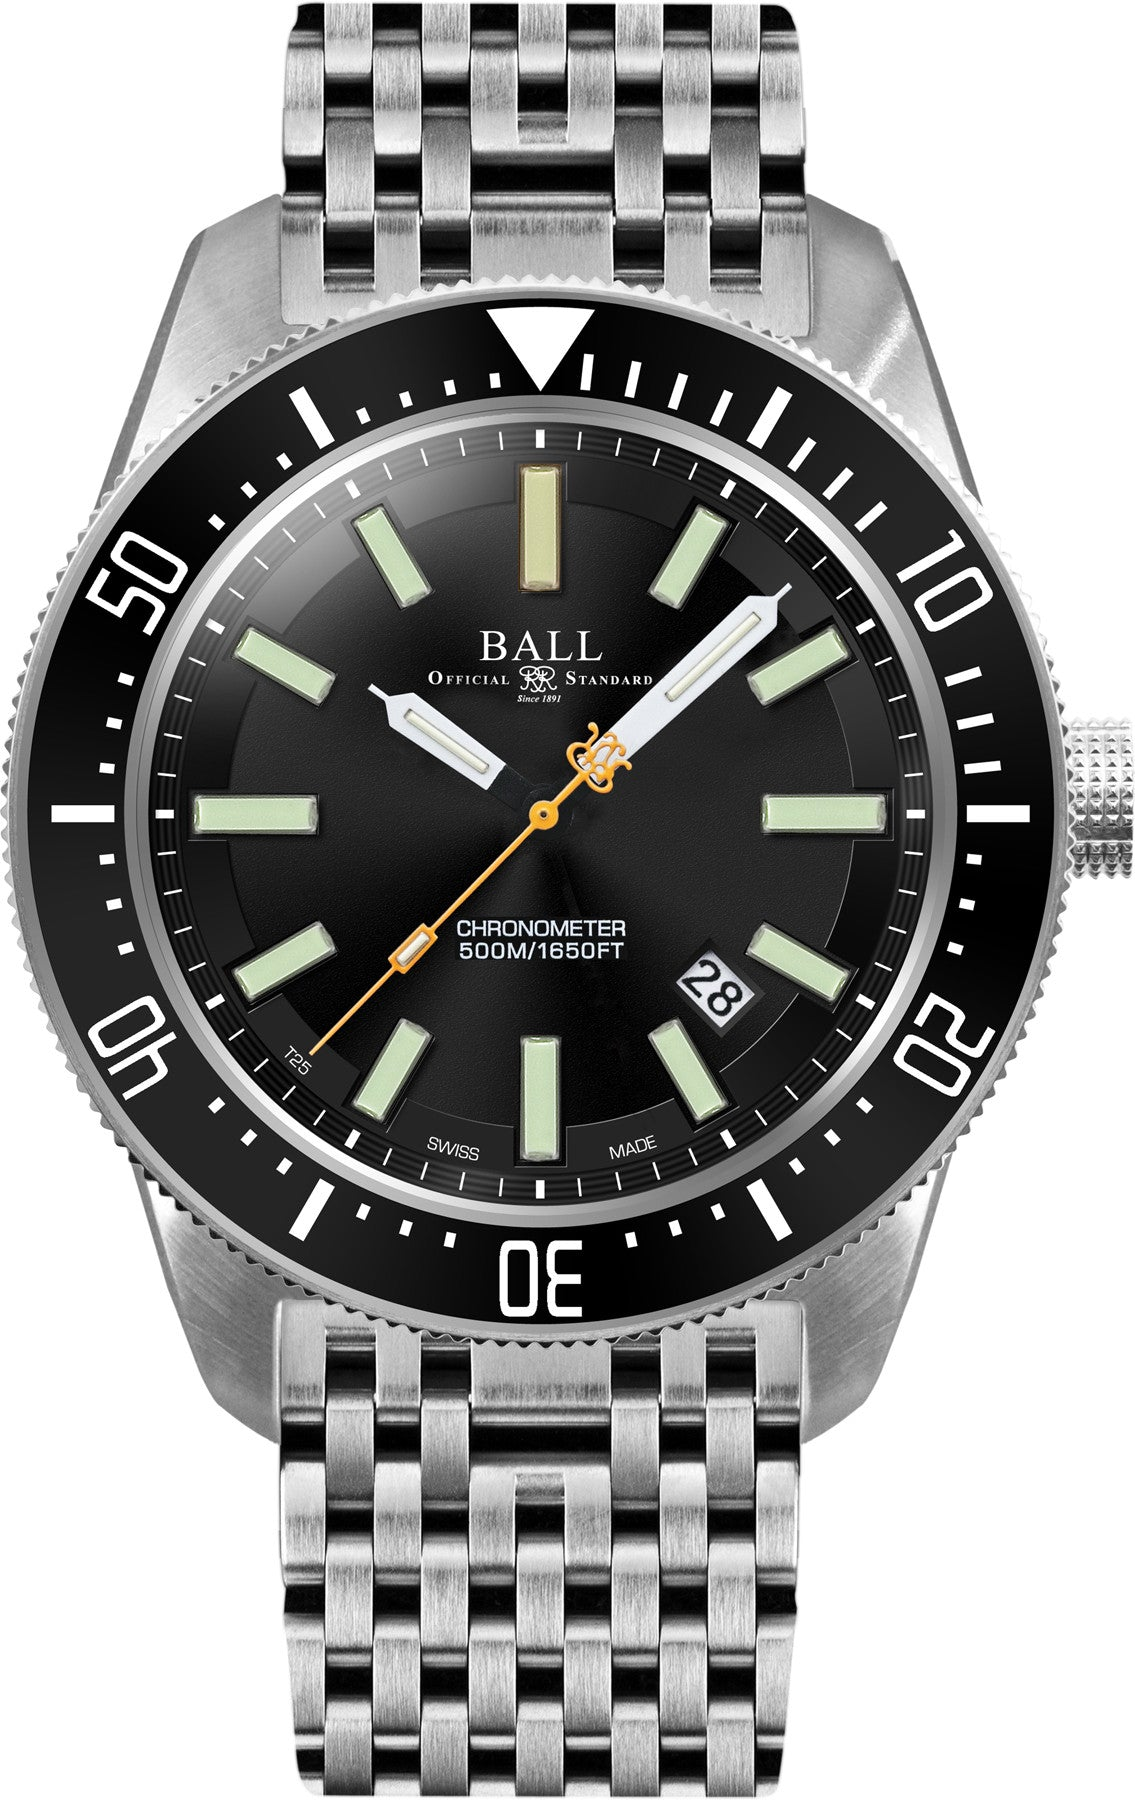 standard watches gy all update ii ball engineer night volcano ncj official